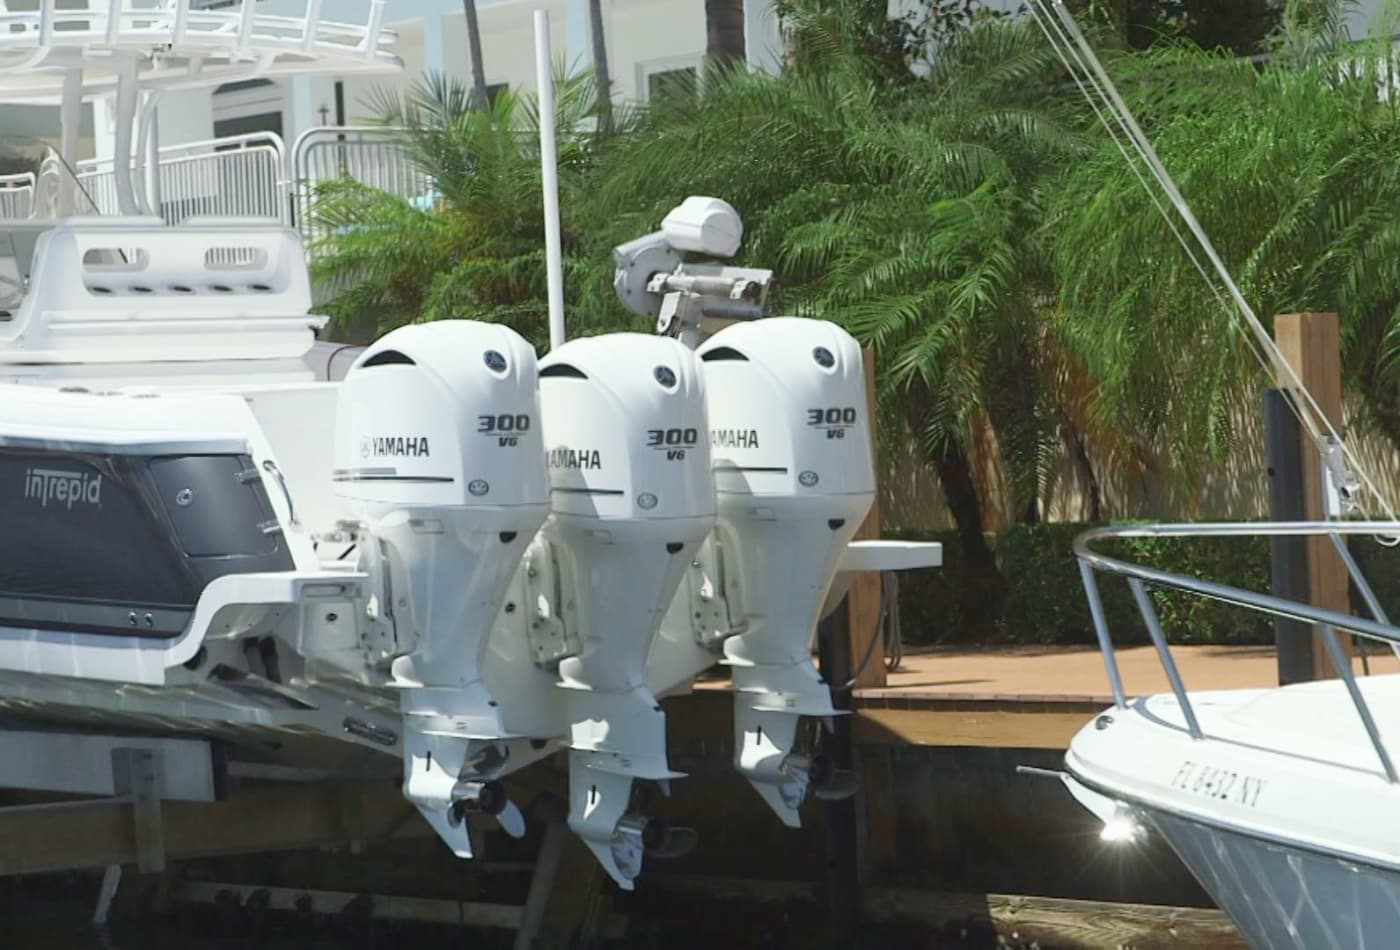 Organized thieves target expensive boat engines